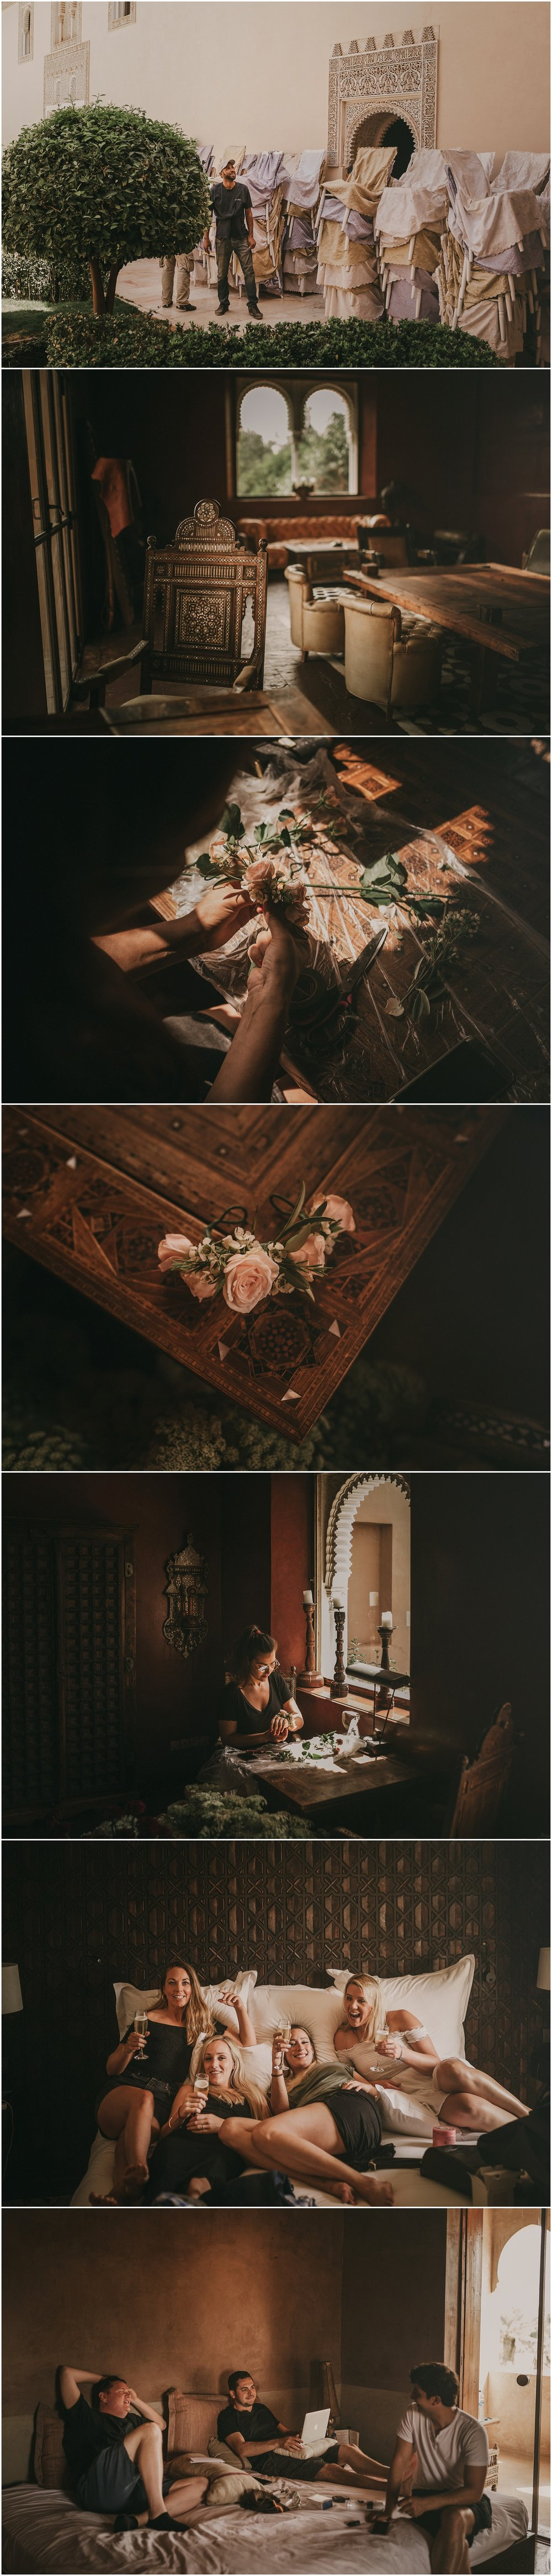 Marrakech wedding photography Pablo Laguia--021.jpg